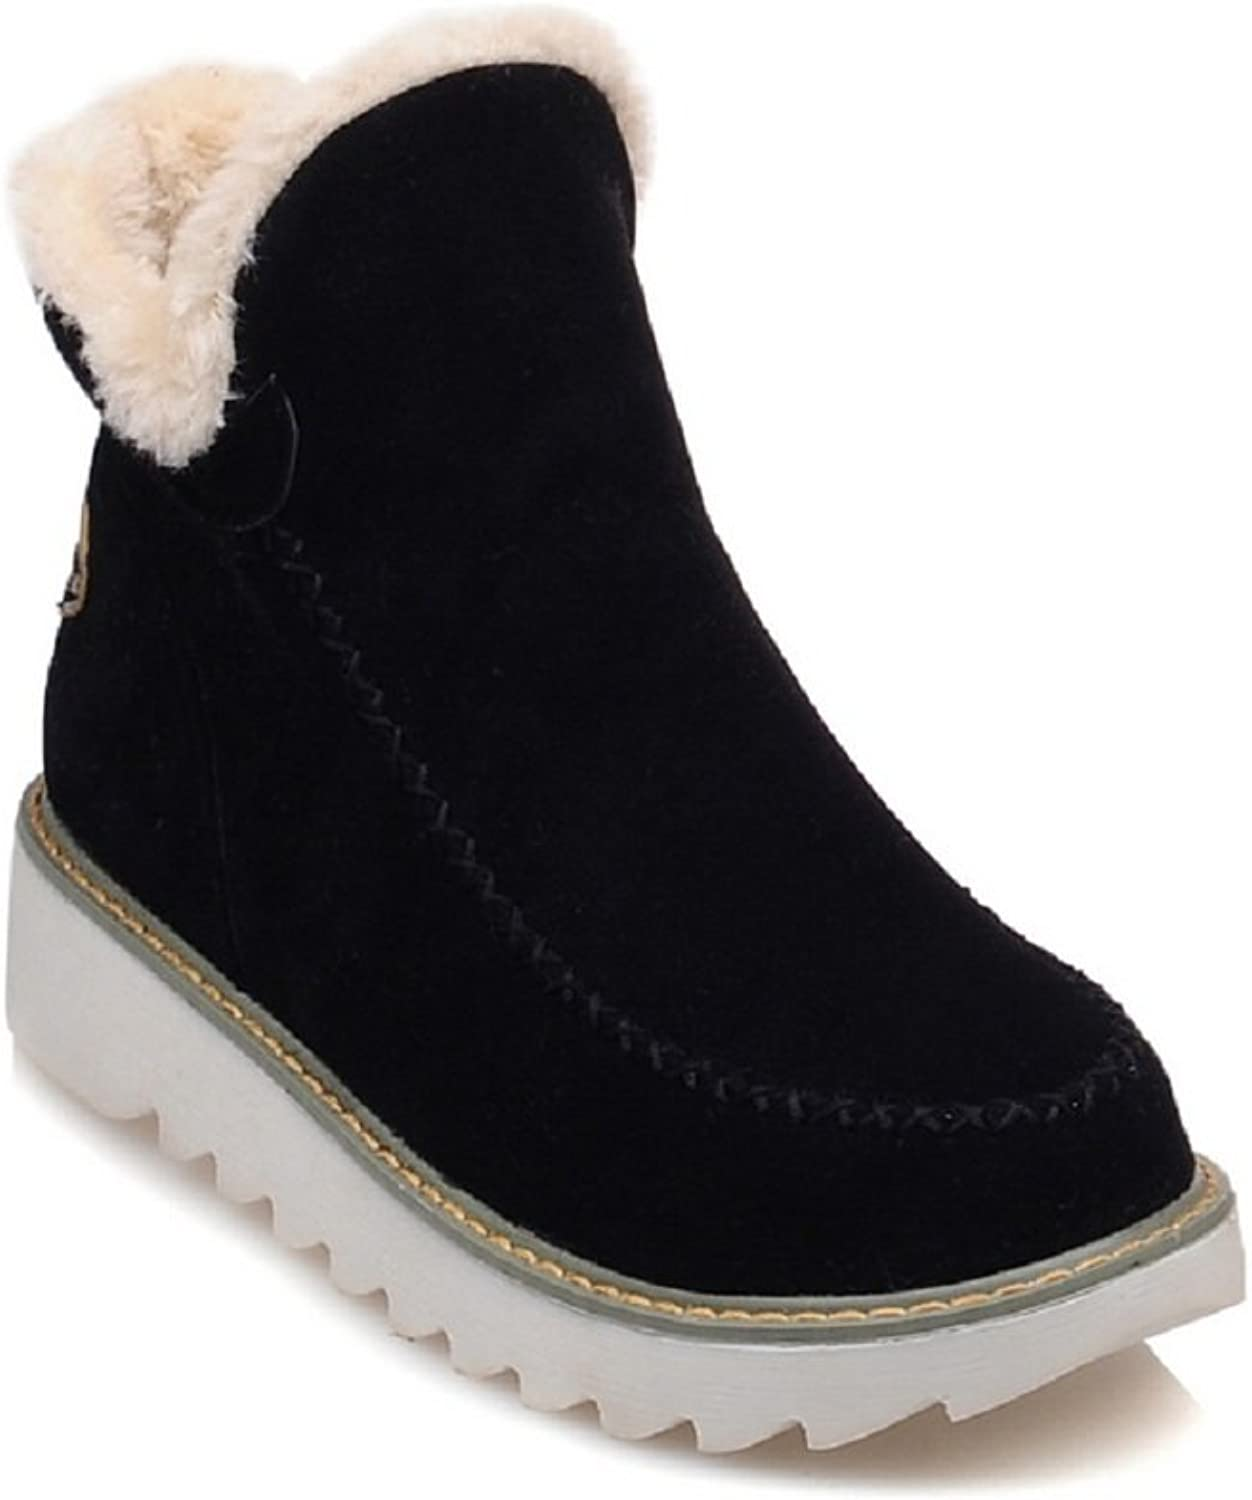 Women Fashion Suede Winter Fur Lined Flats Warm Snow Boots Slip on Ankle Booties Outdoor Walking Casual shoes